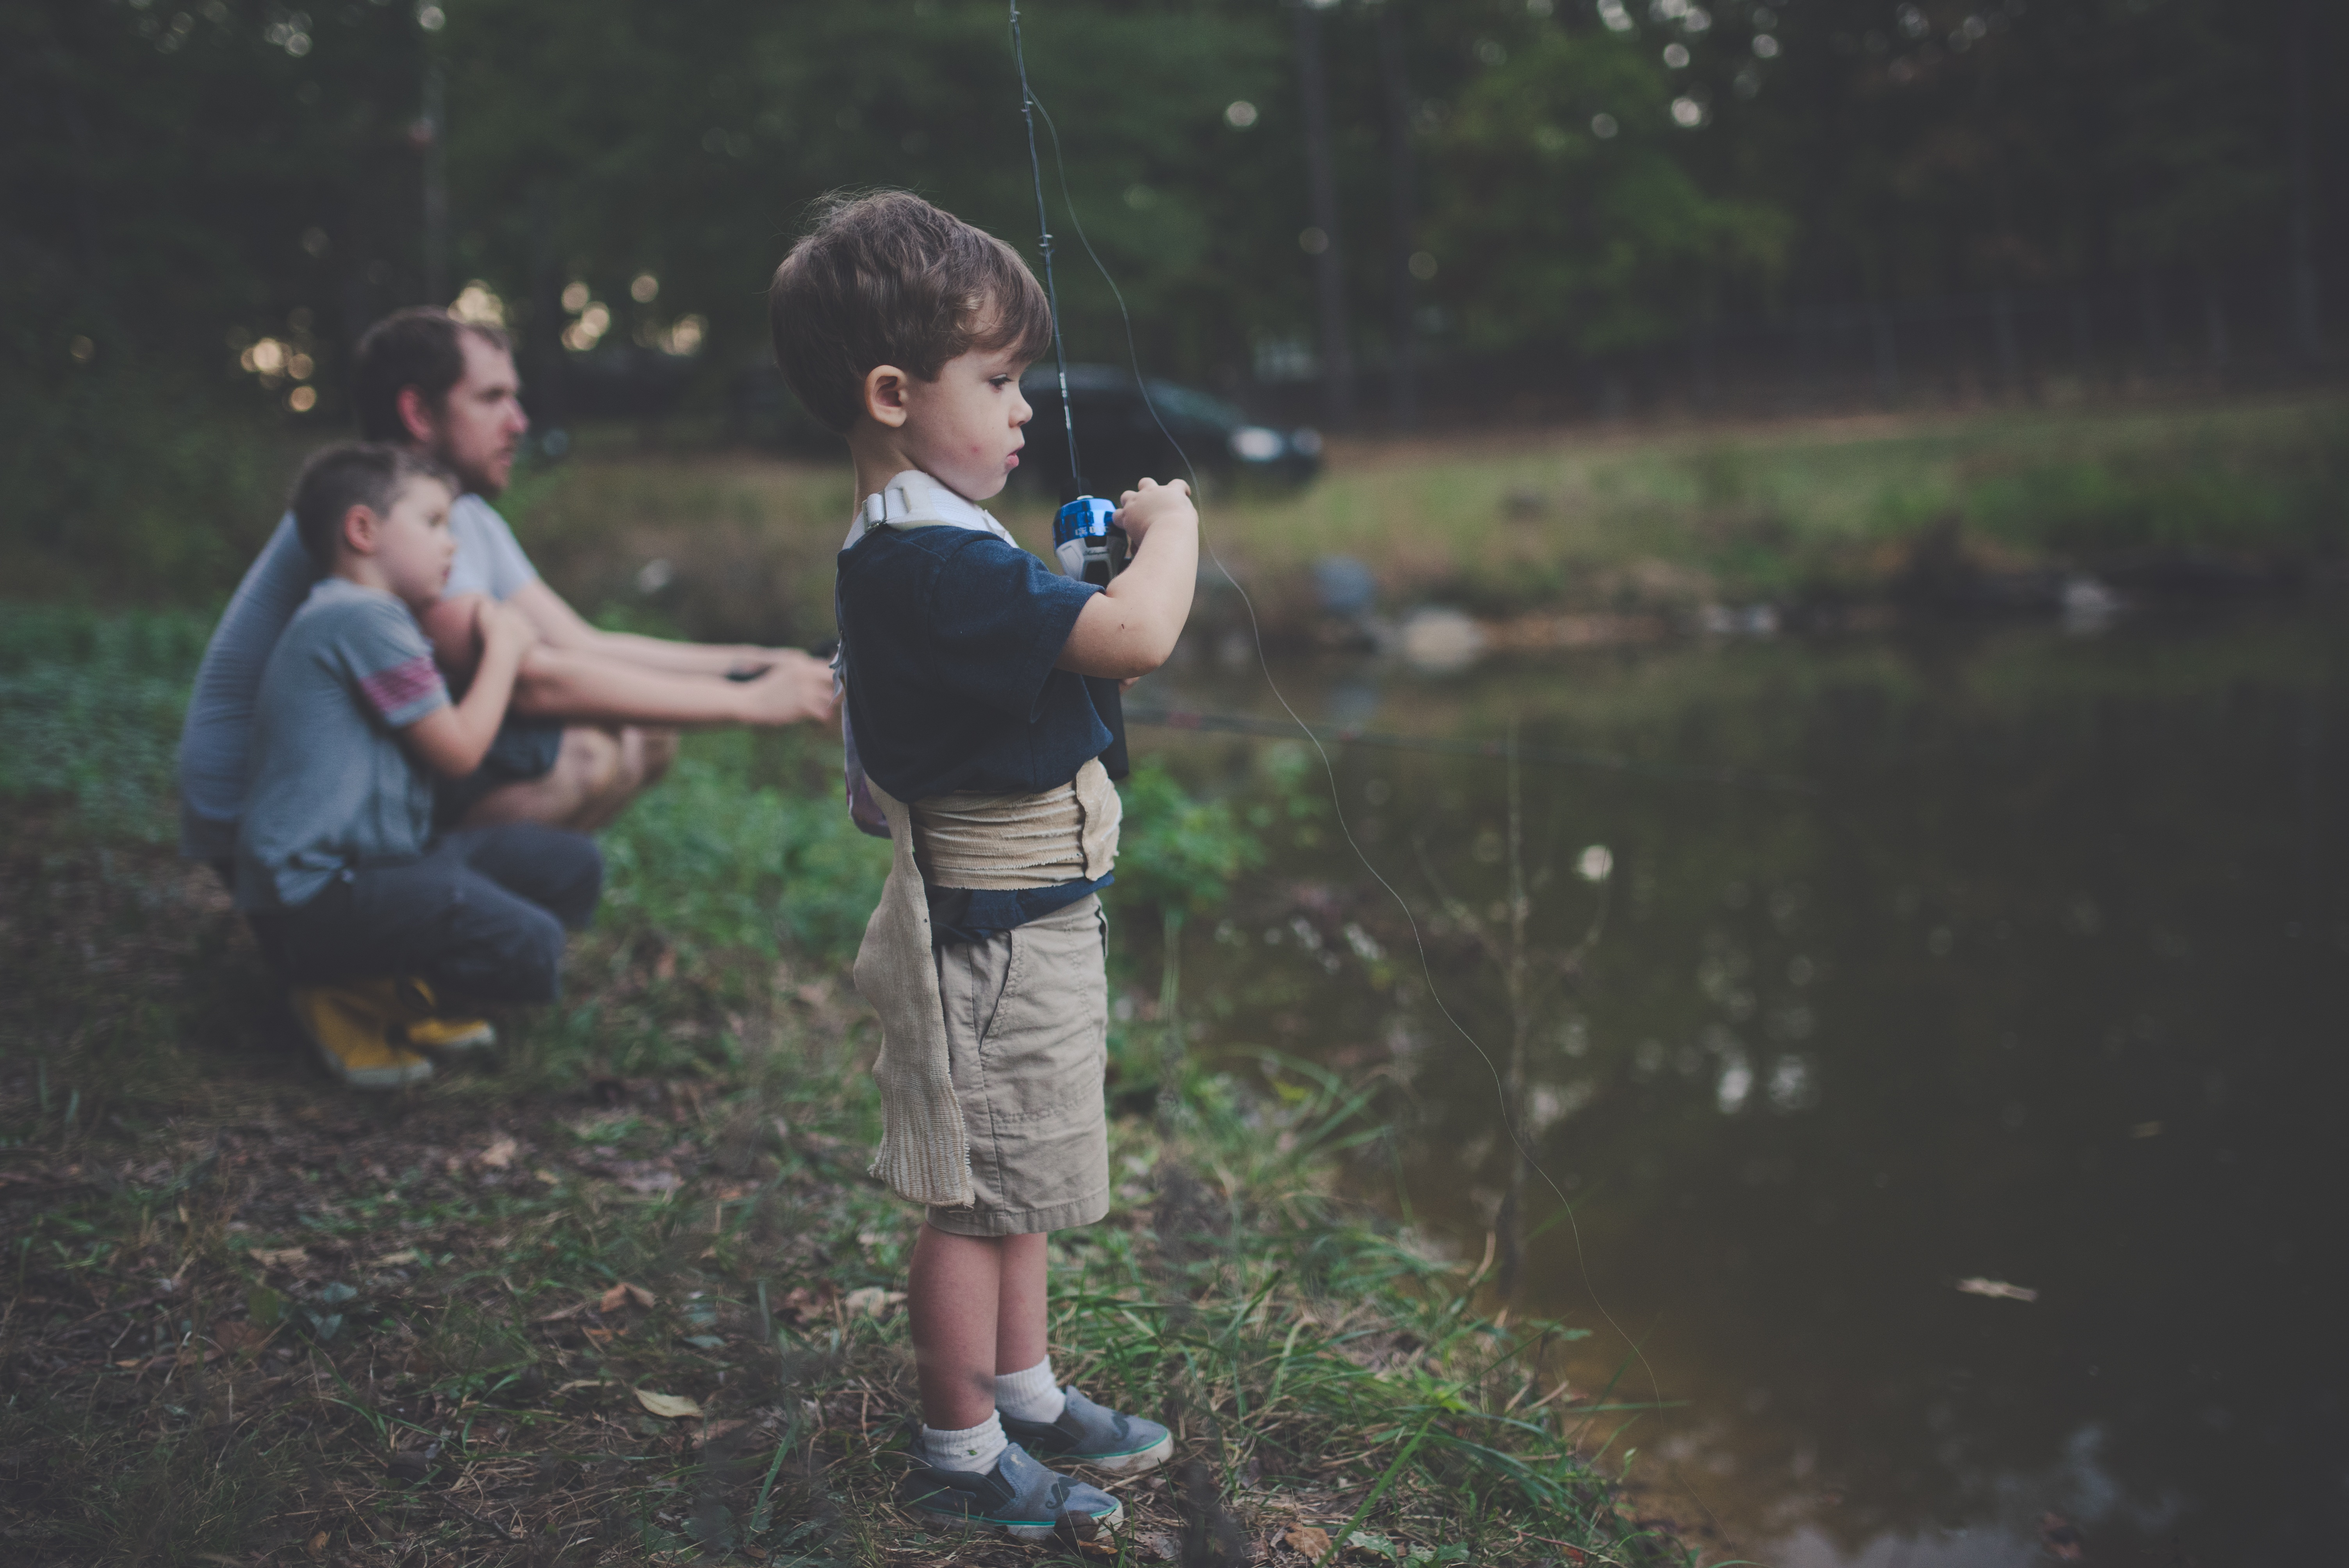 Virginia License Free fishing days June 2018 family friends and children fun for all Virginia outdoor activities